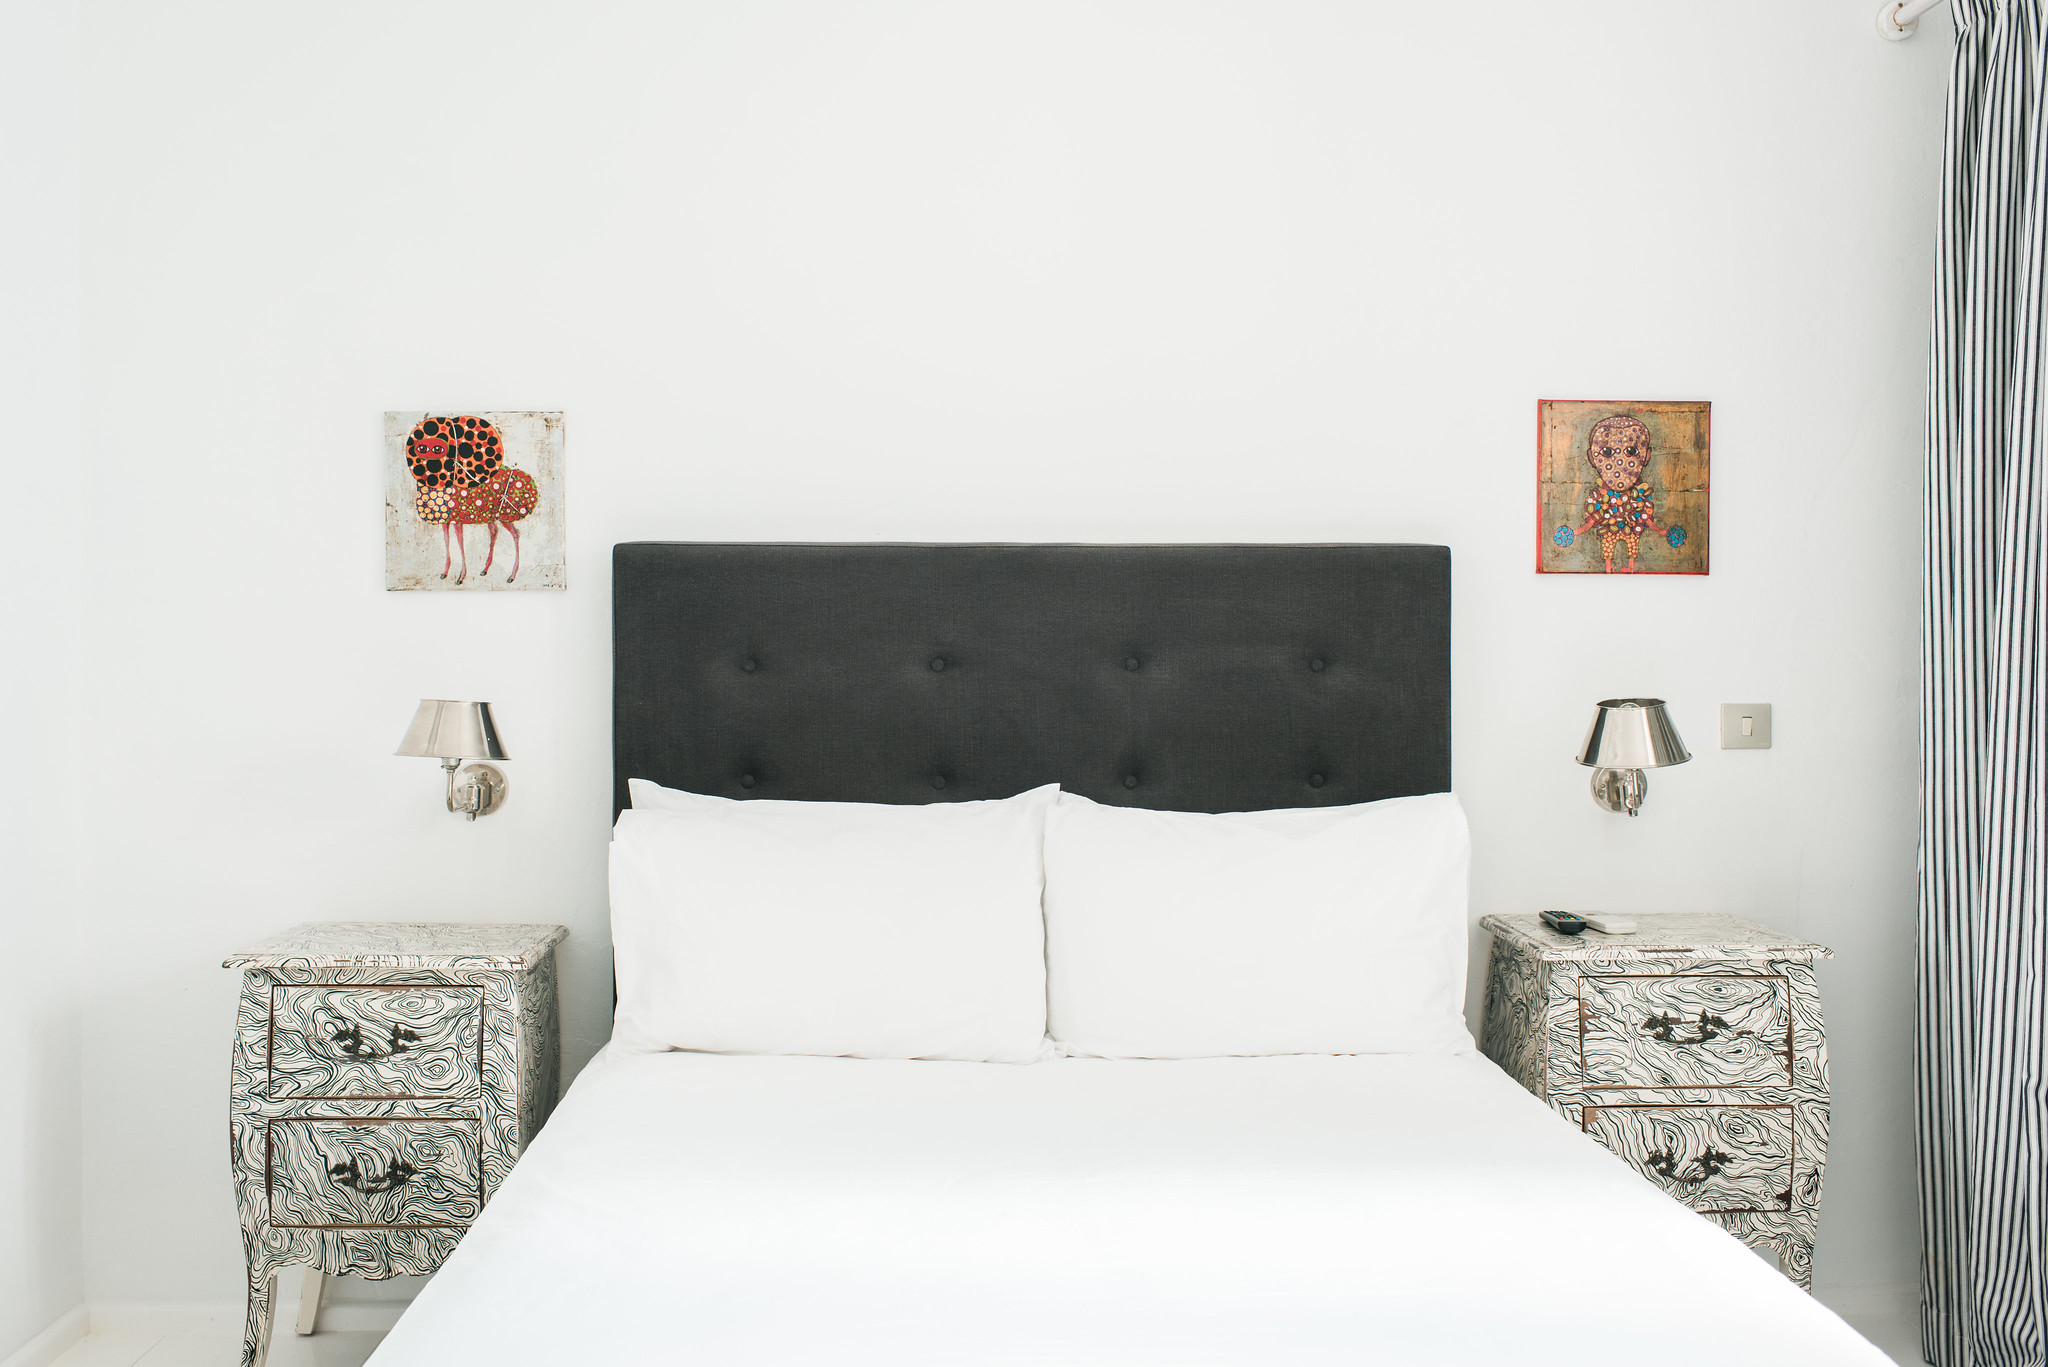 https://www.white-ibiza.com/wp-content/uploads/2020/06/white-ibiza-villas-casa-arabella-interior-bedroom4.jpg